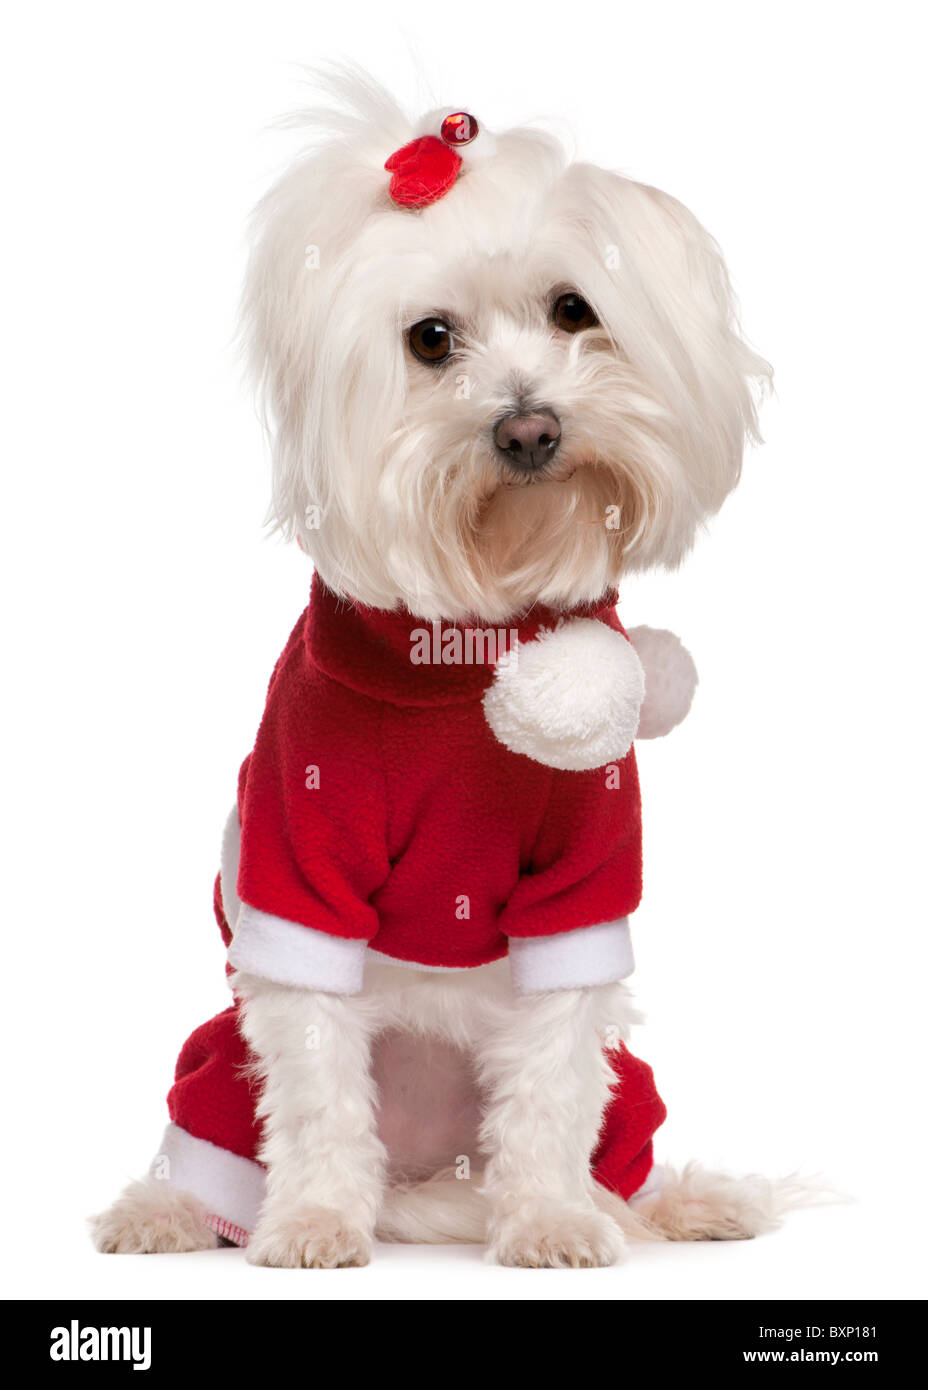 Maltese wearing Santa outfit, 4 years old, in front of white background - Stock Image